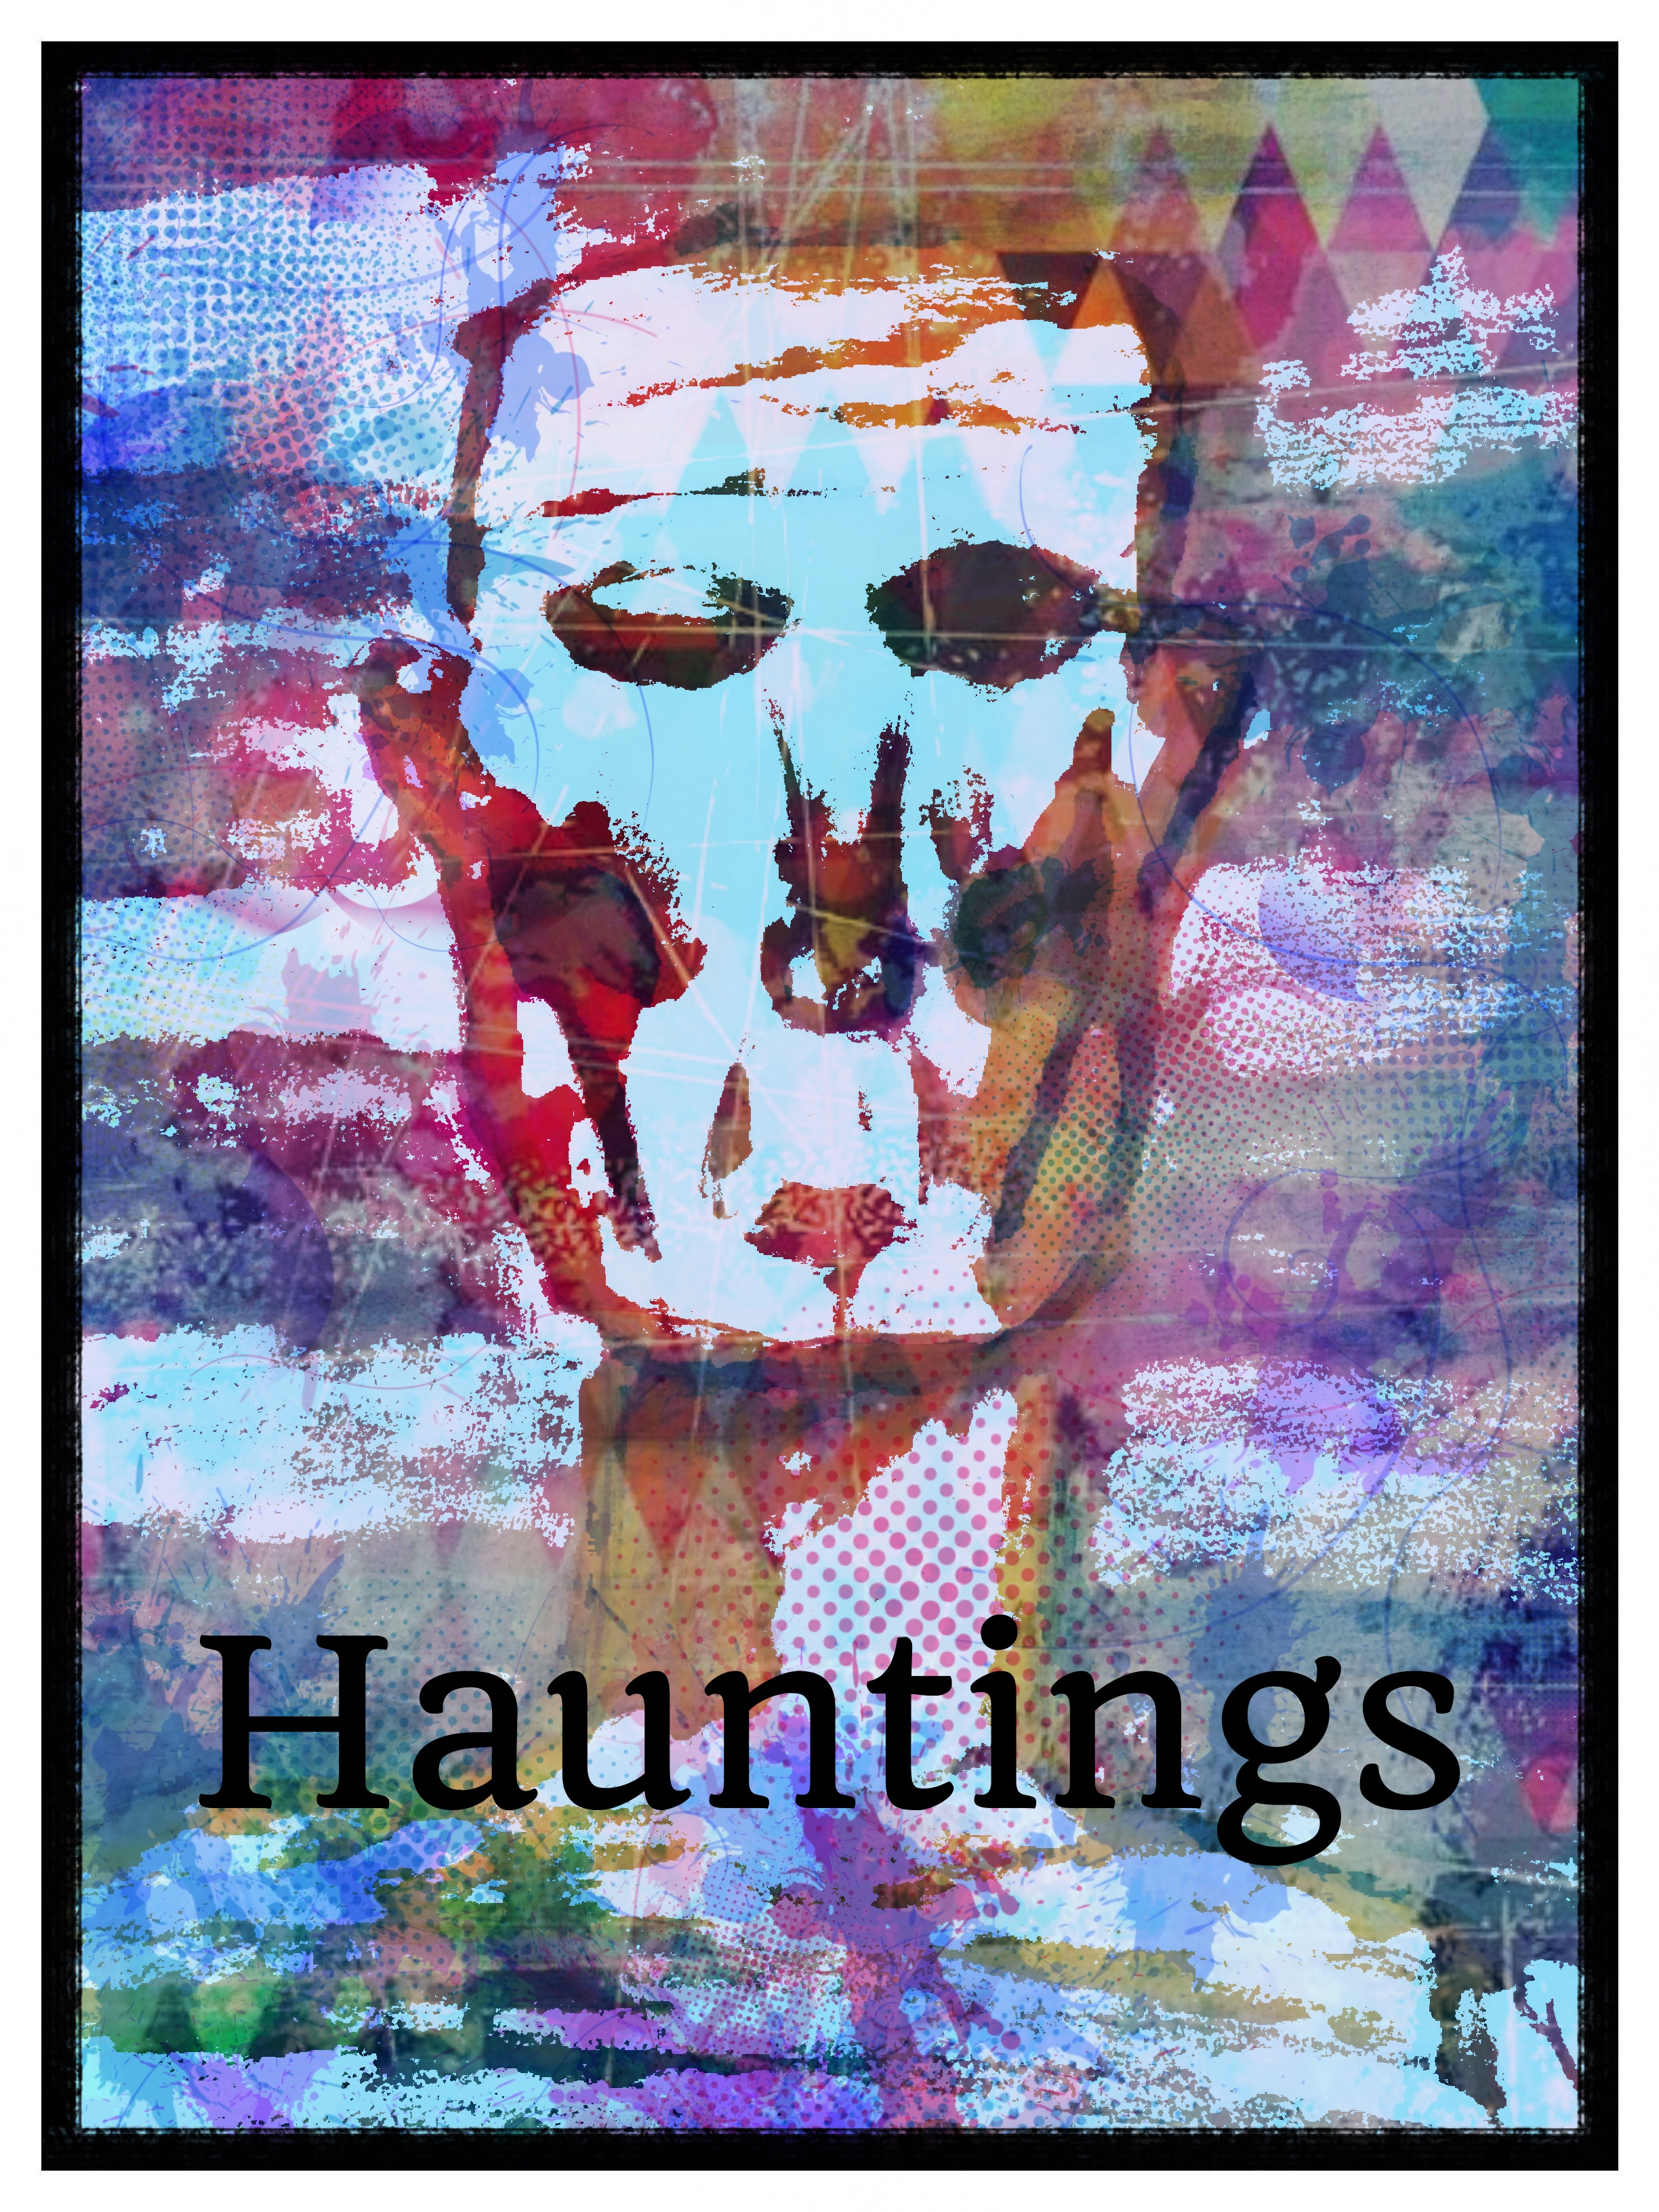 50-Word Story: Hauntings (For Toni & Vern)